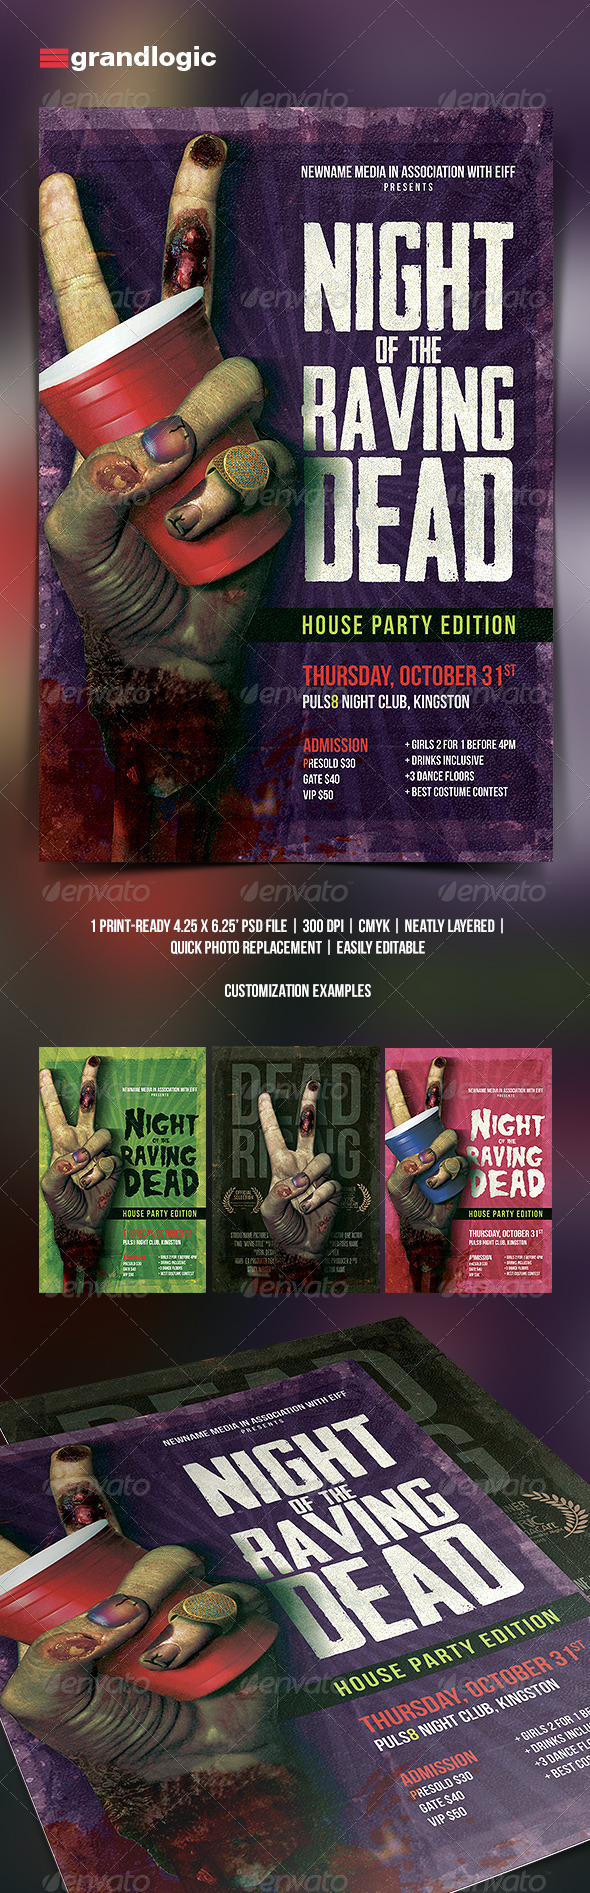 GraphicRiver Halloween House Party Flyer 5509084